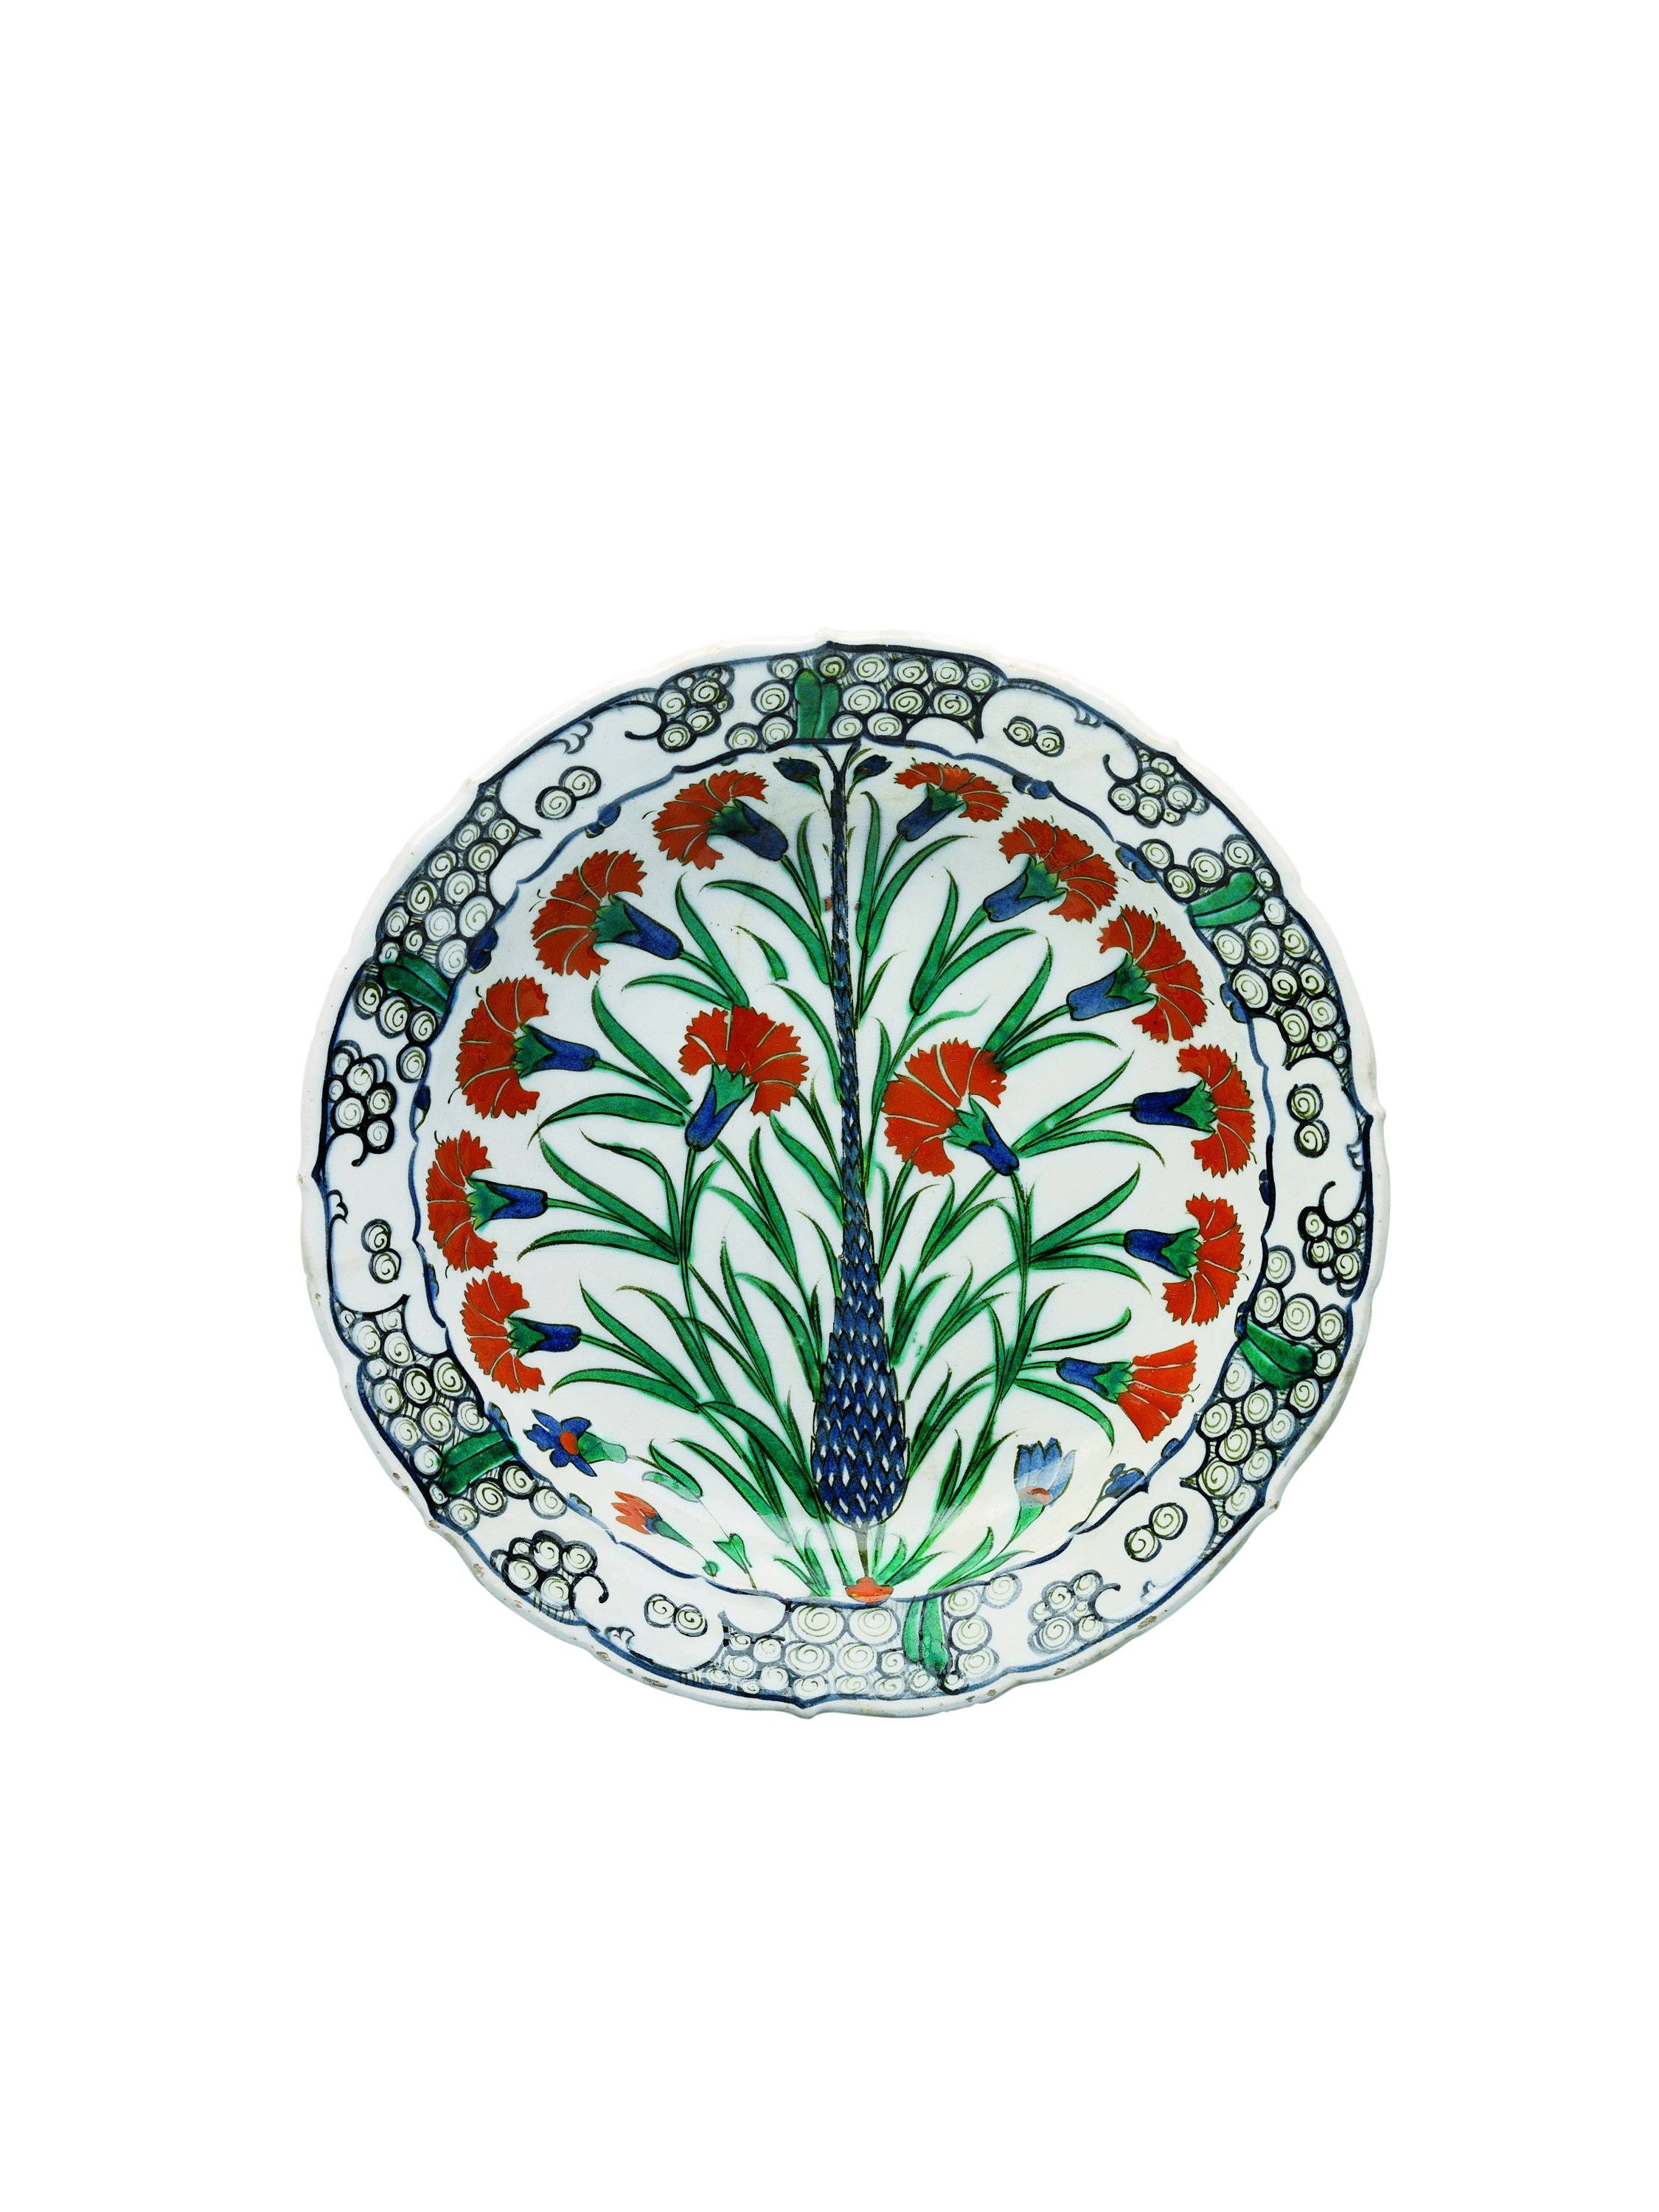 A ceramic plate made in Ottoman Iznik between 1570–1575.